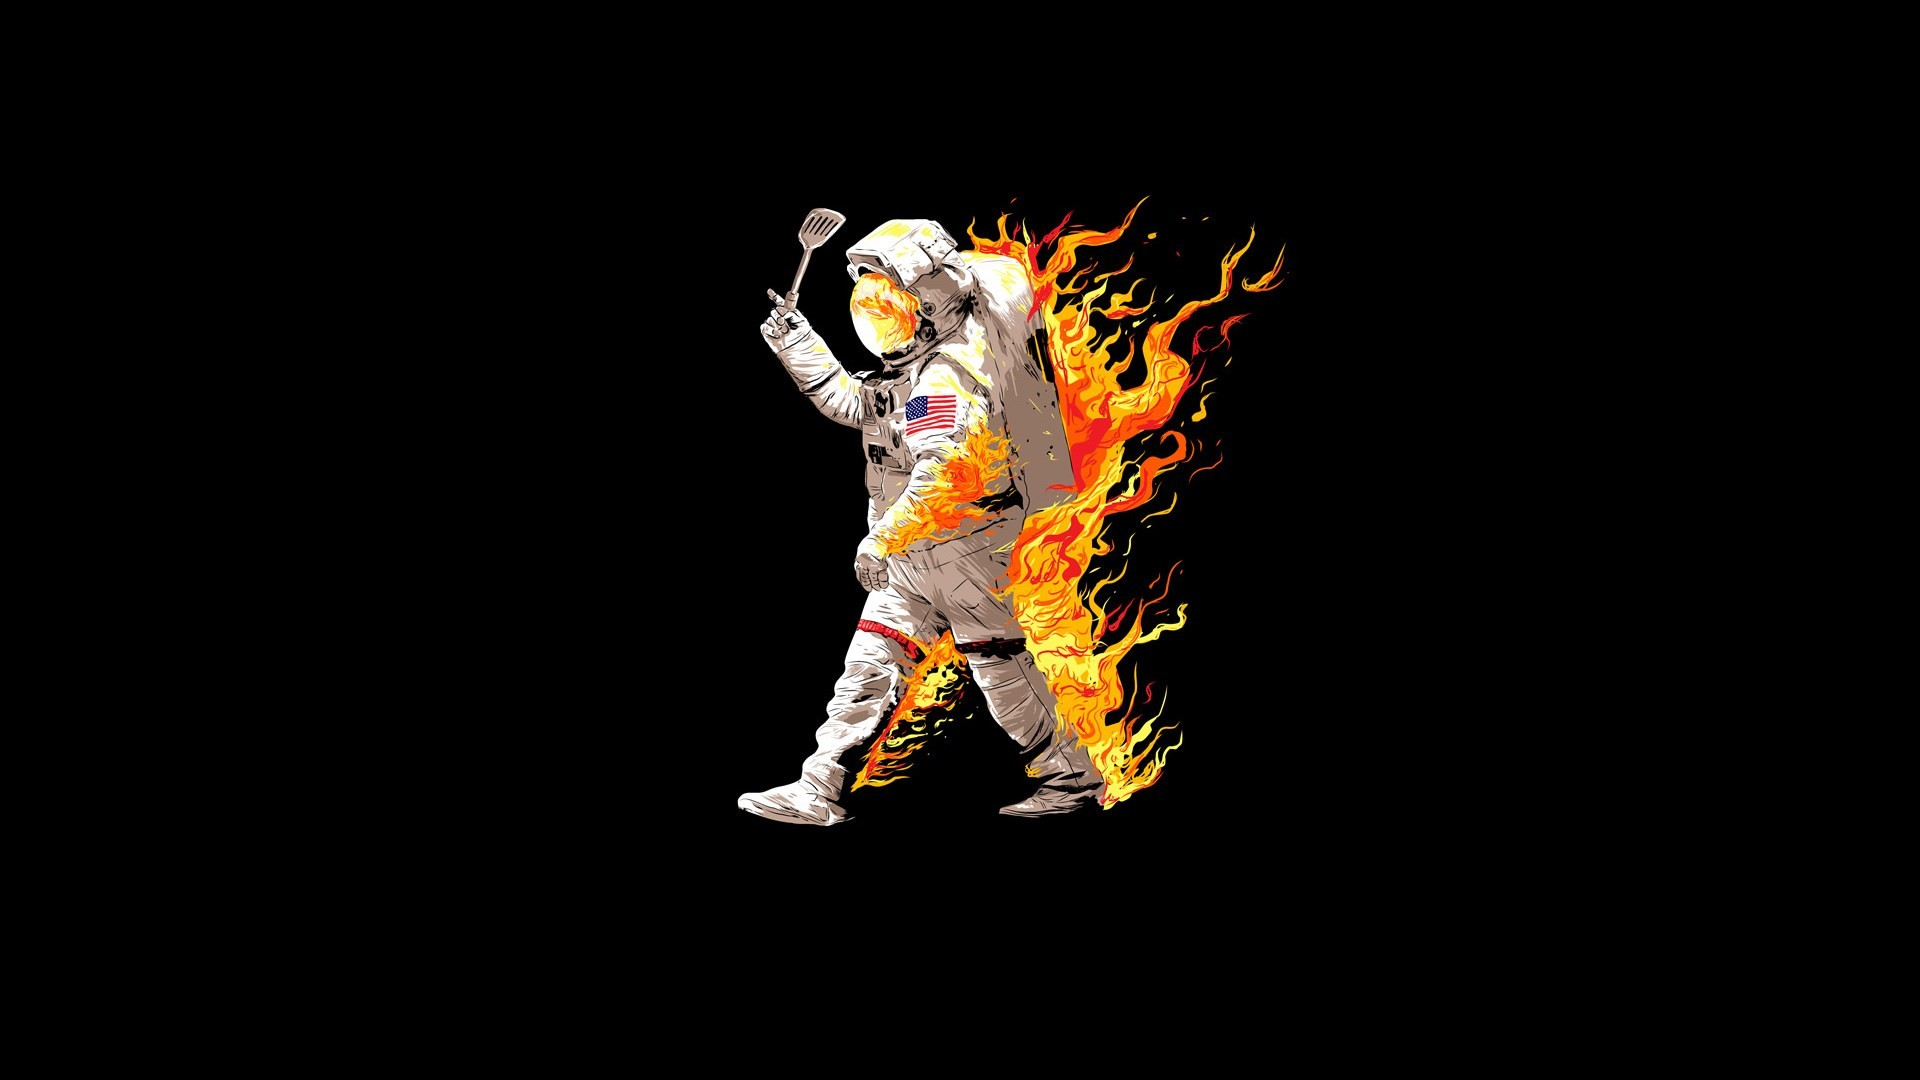 Res: 1920x1080,  computer wallpaper for astronaut